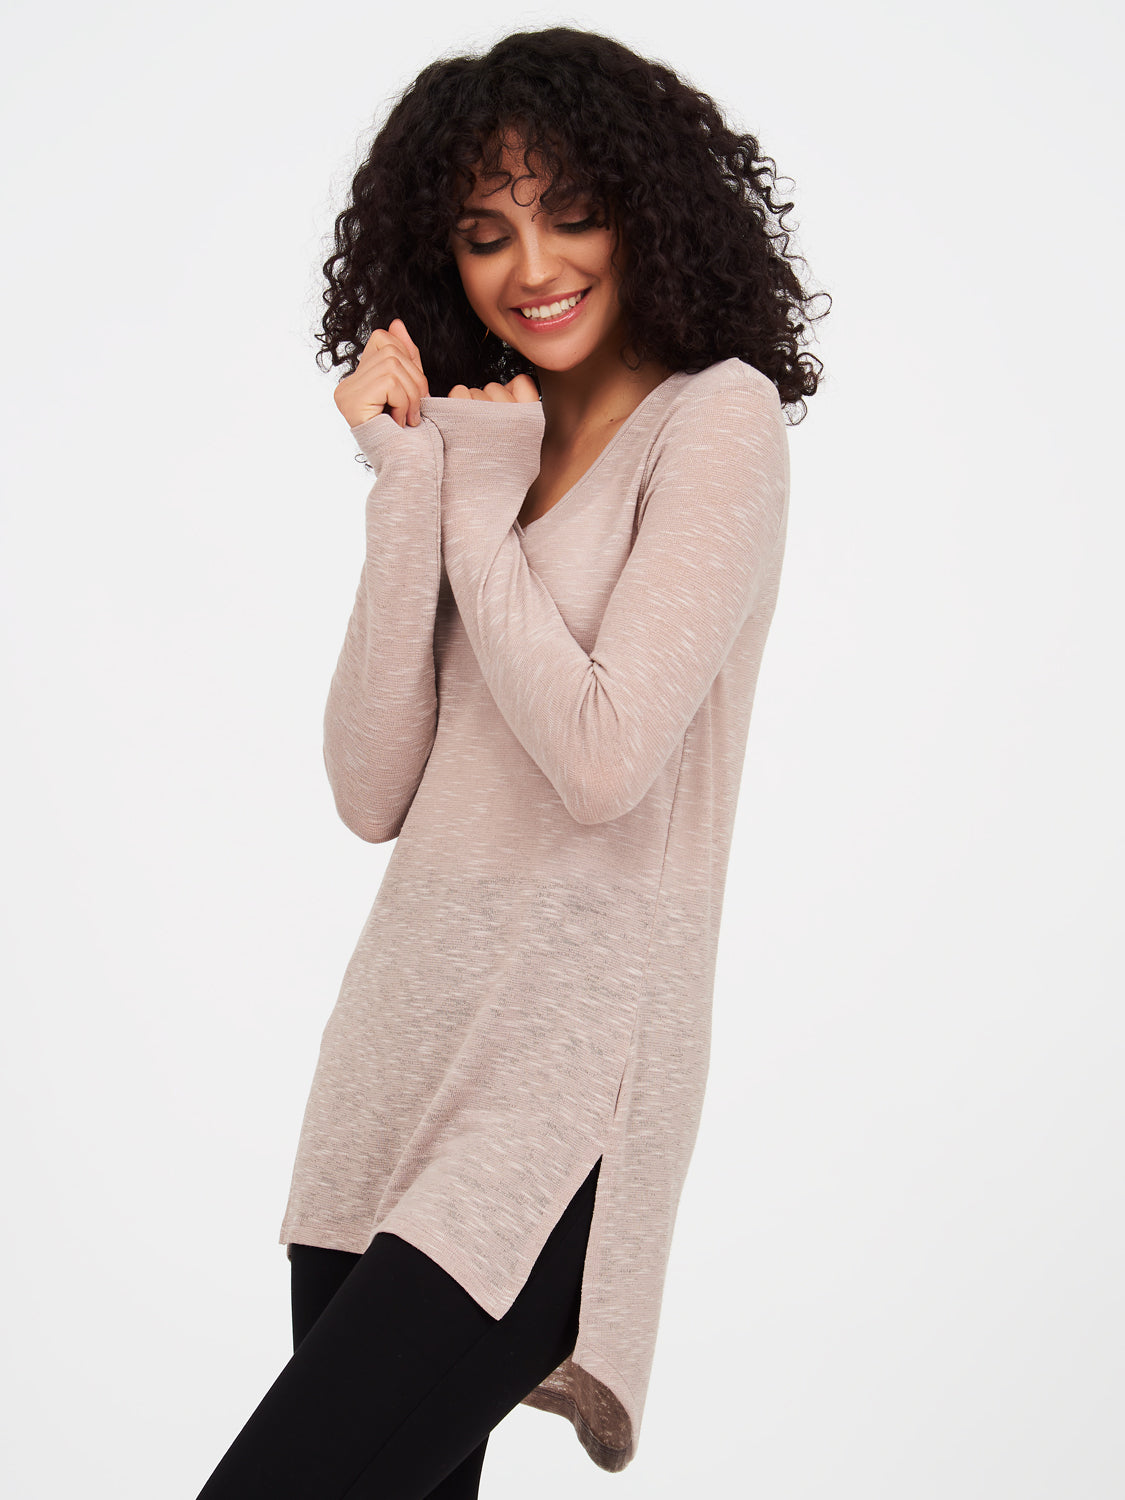 Long Sleeve Slub Sweater Knit Tunic Top